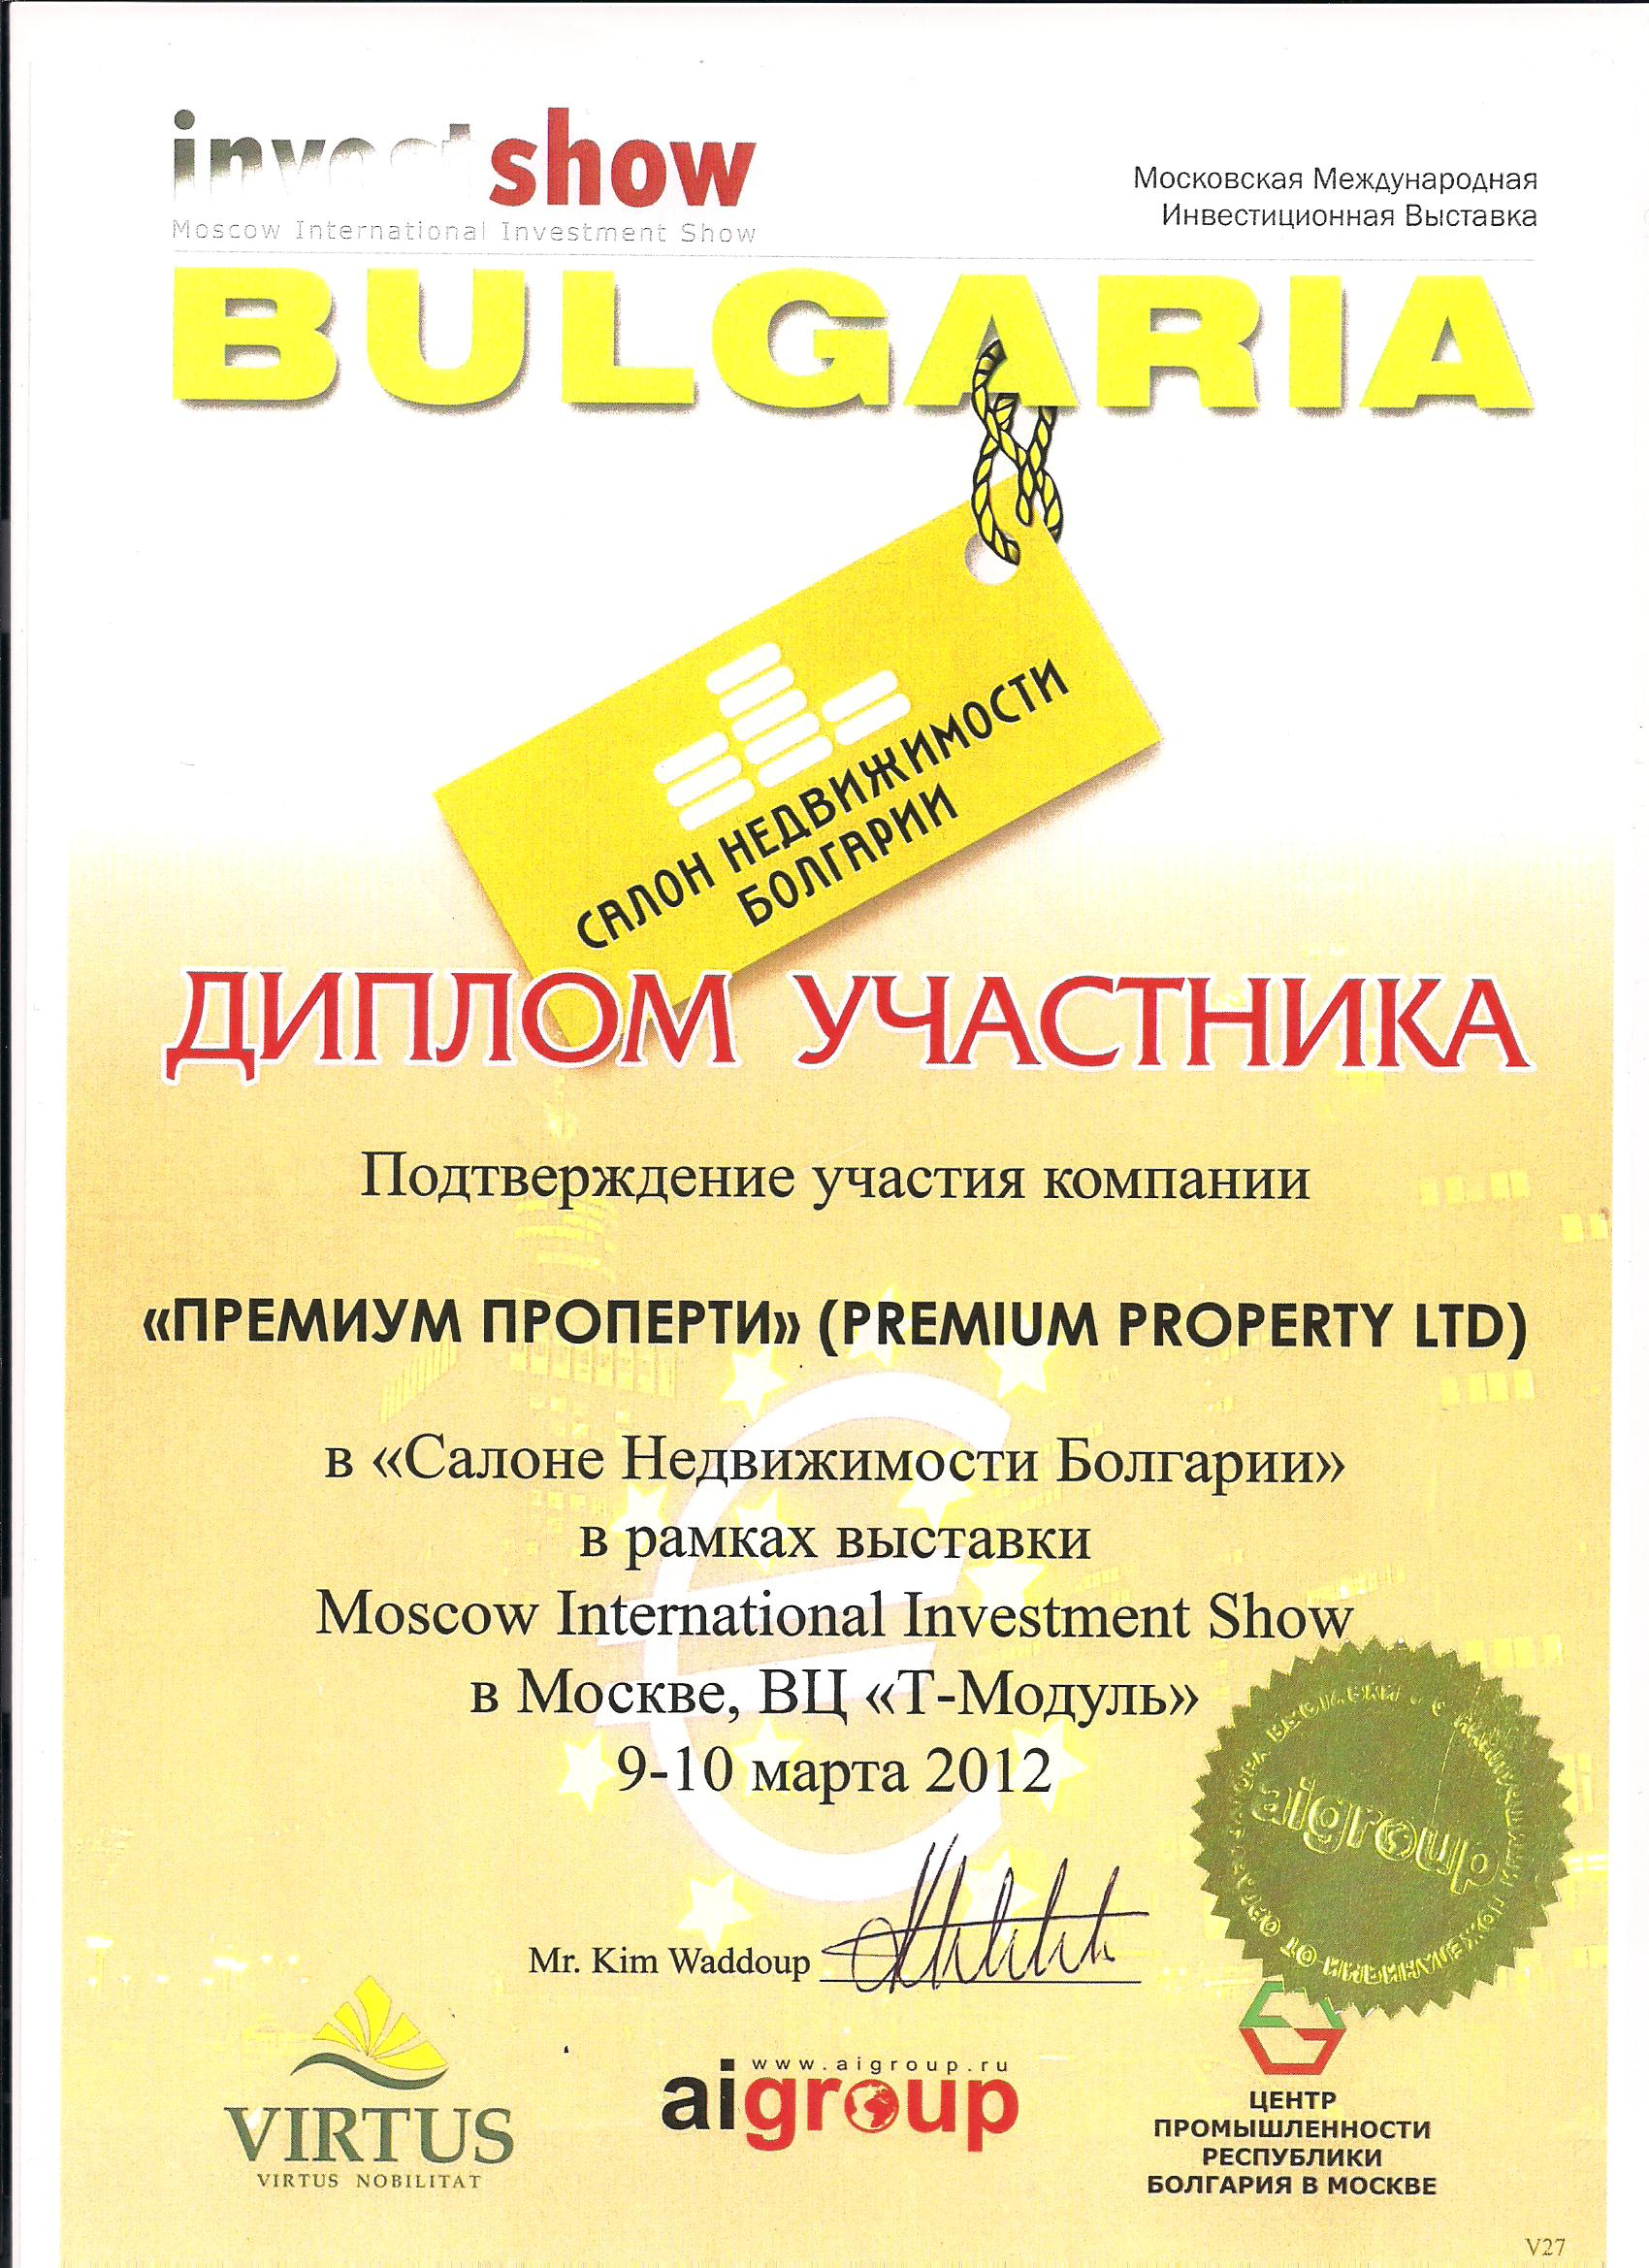 Moscow International Investment Show 2012 (Т-Модуль)